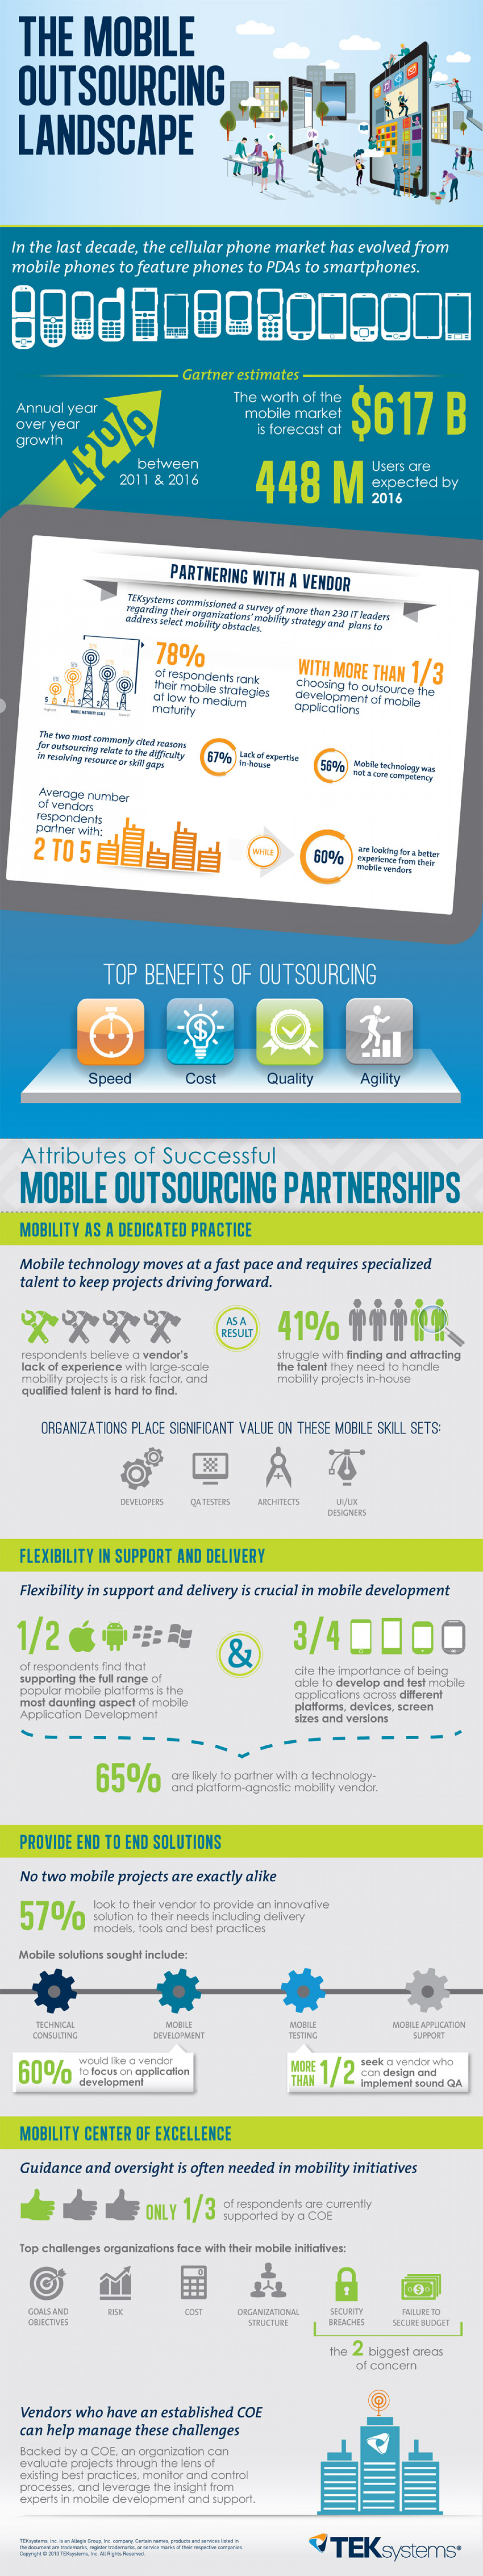 The Mobile Outsourcing Landscape Infographic